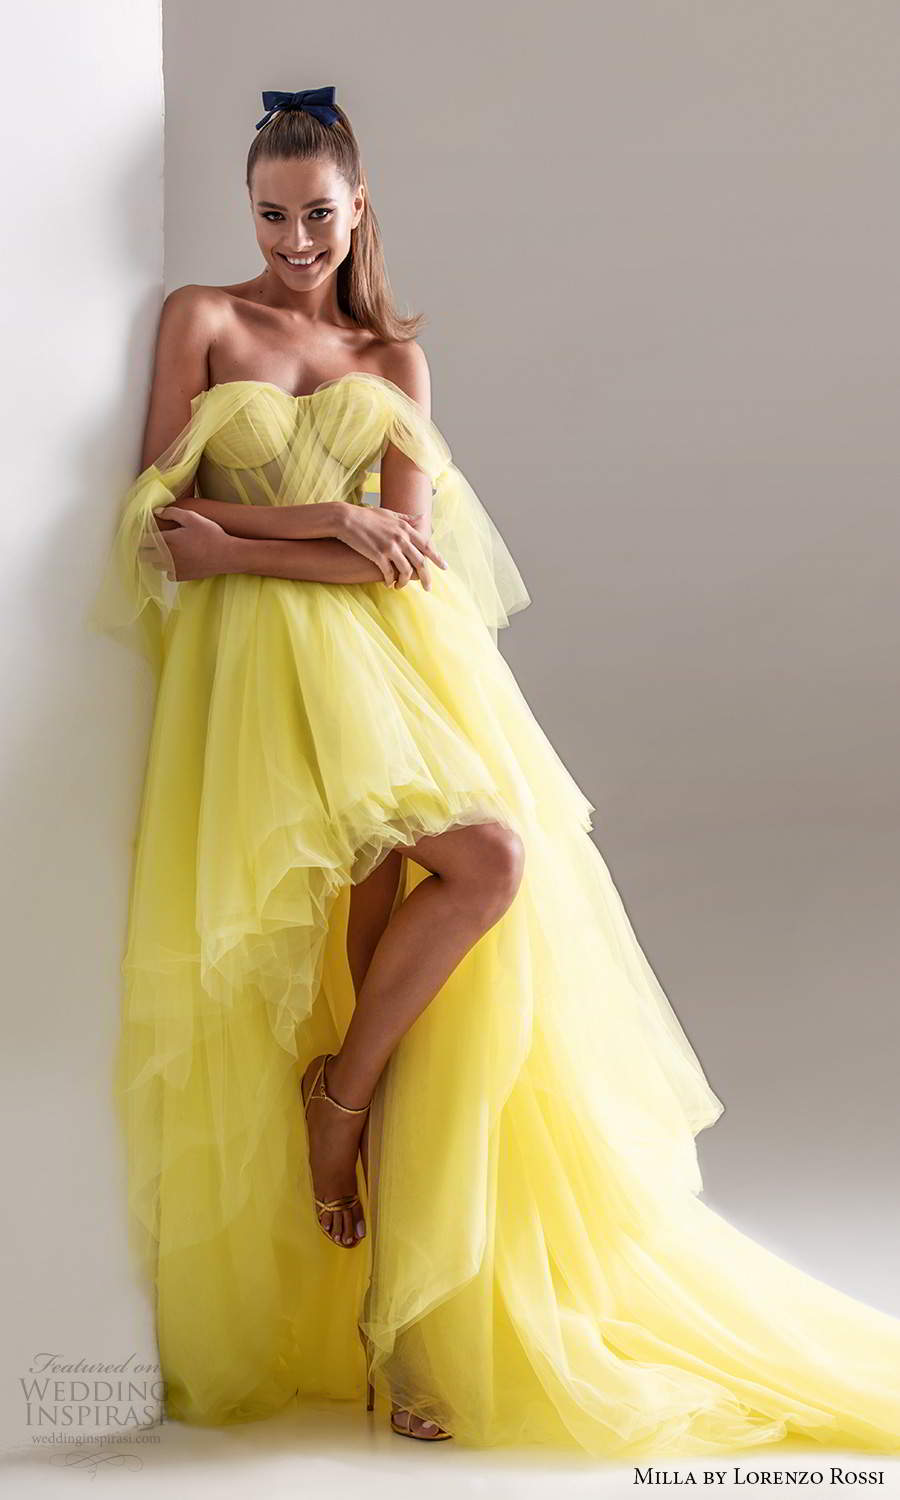 milla by lorenzo rossi 2020 rtw sleeveless thick ruched straps sweetheart neckline high low evening neon yellow (24) mv